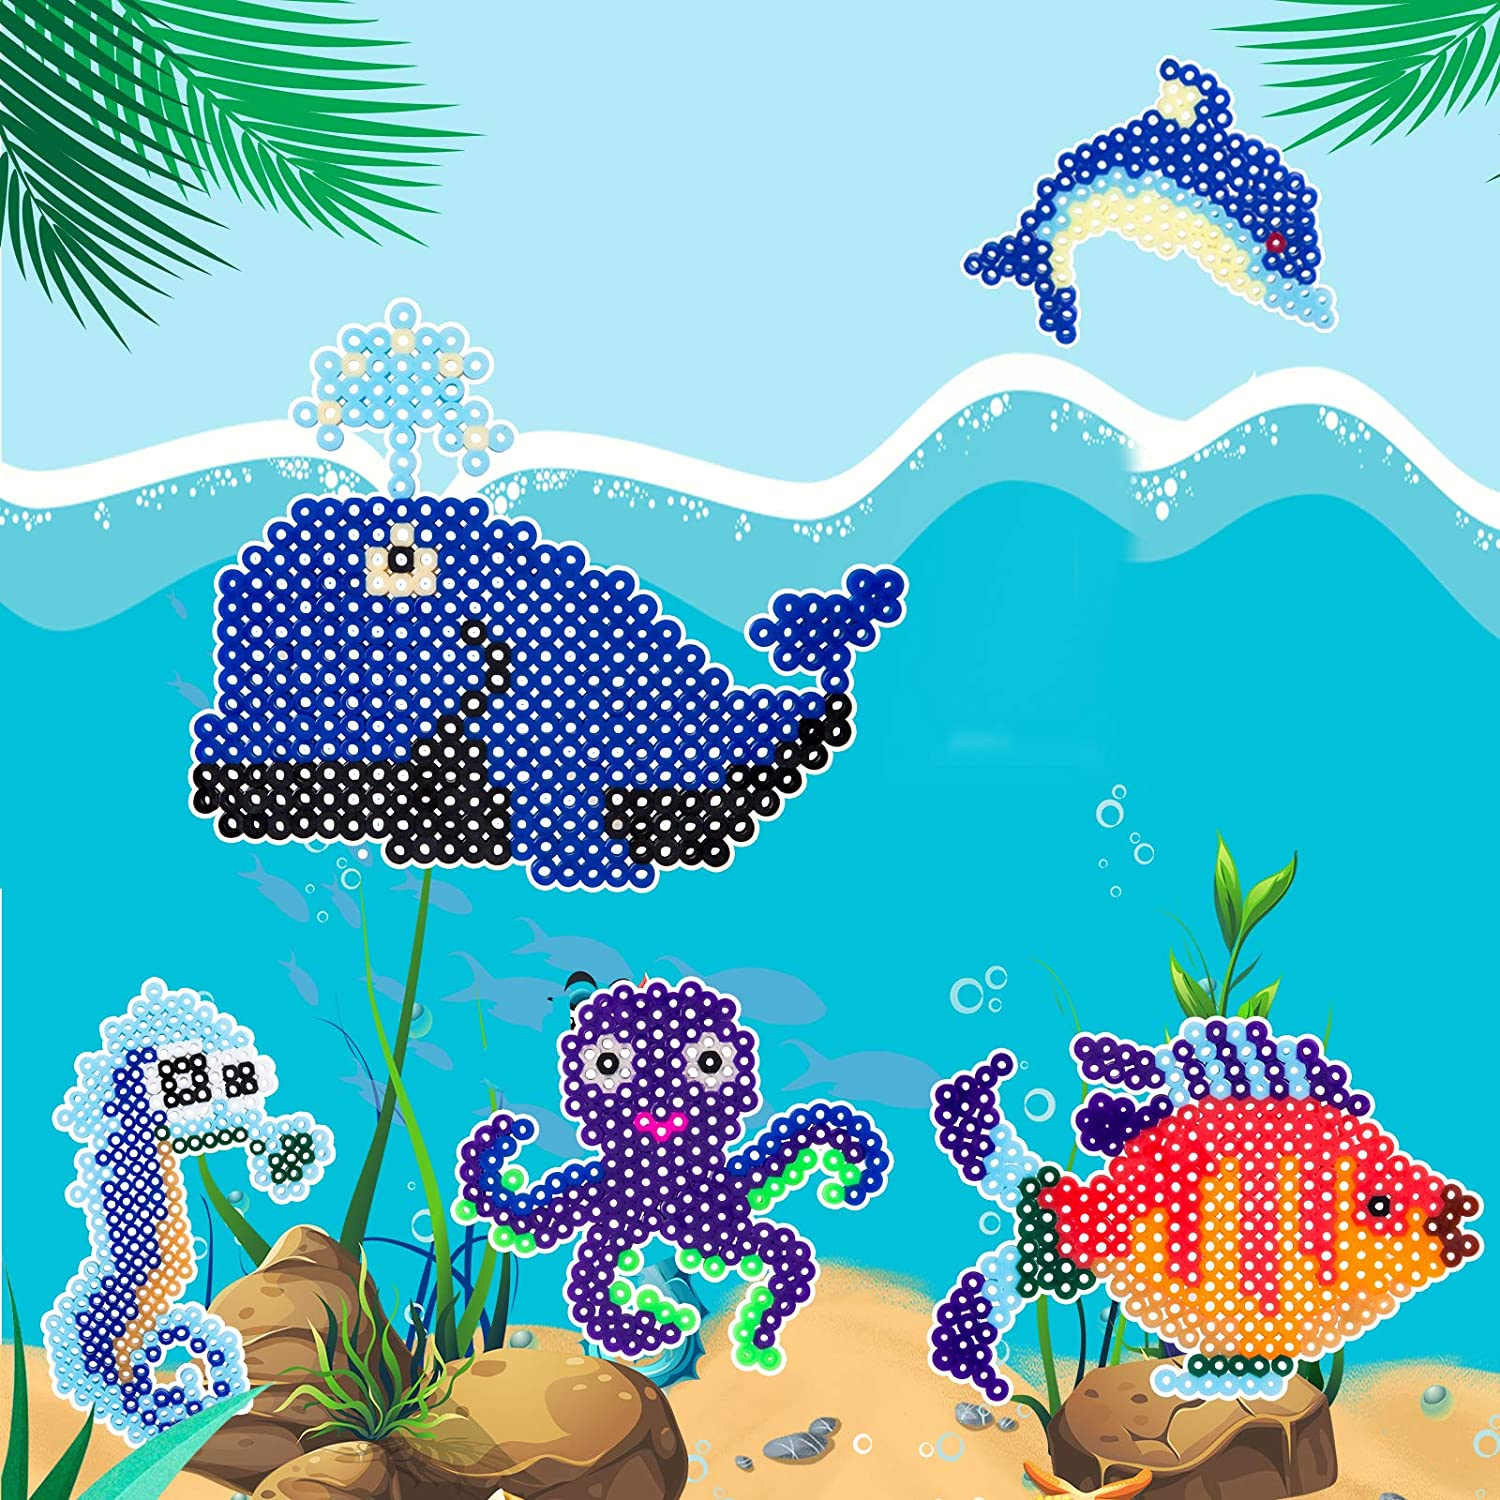 LIHAO Fuse Beads Boards 5 Pieces Fuse Beads Pegboard Animal Shape Fish Dolphin Shape Plastic Beads Pegboard with Template for Kids Craft Beads